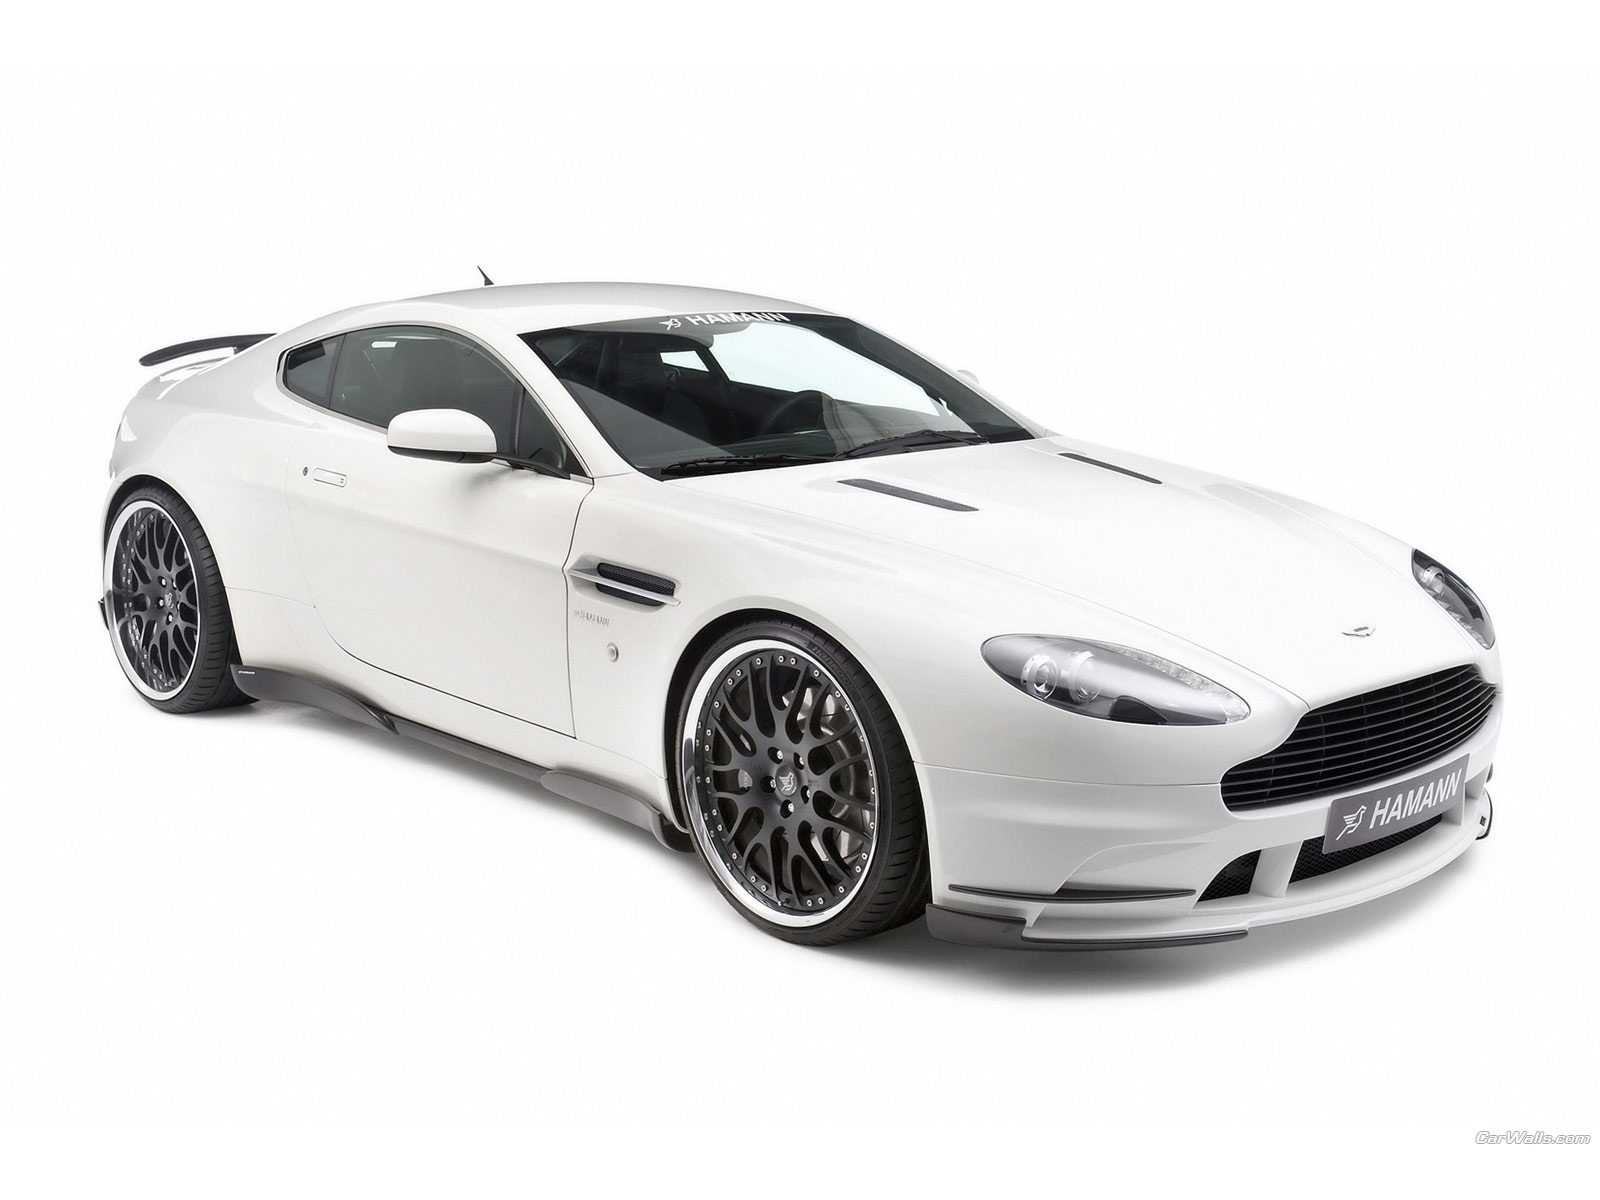 Aston martin V8 vantage 215 1600x1200 Cool Car Wallpapers Aston Martin